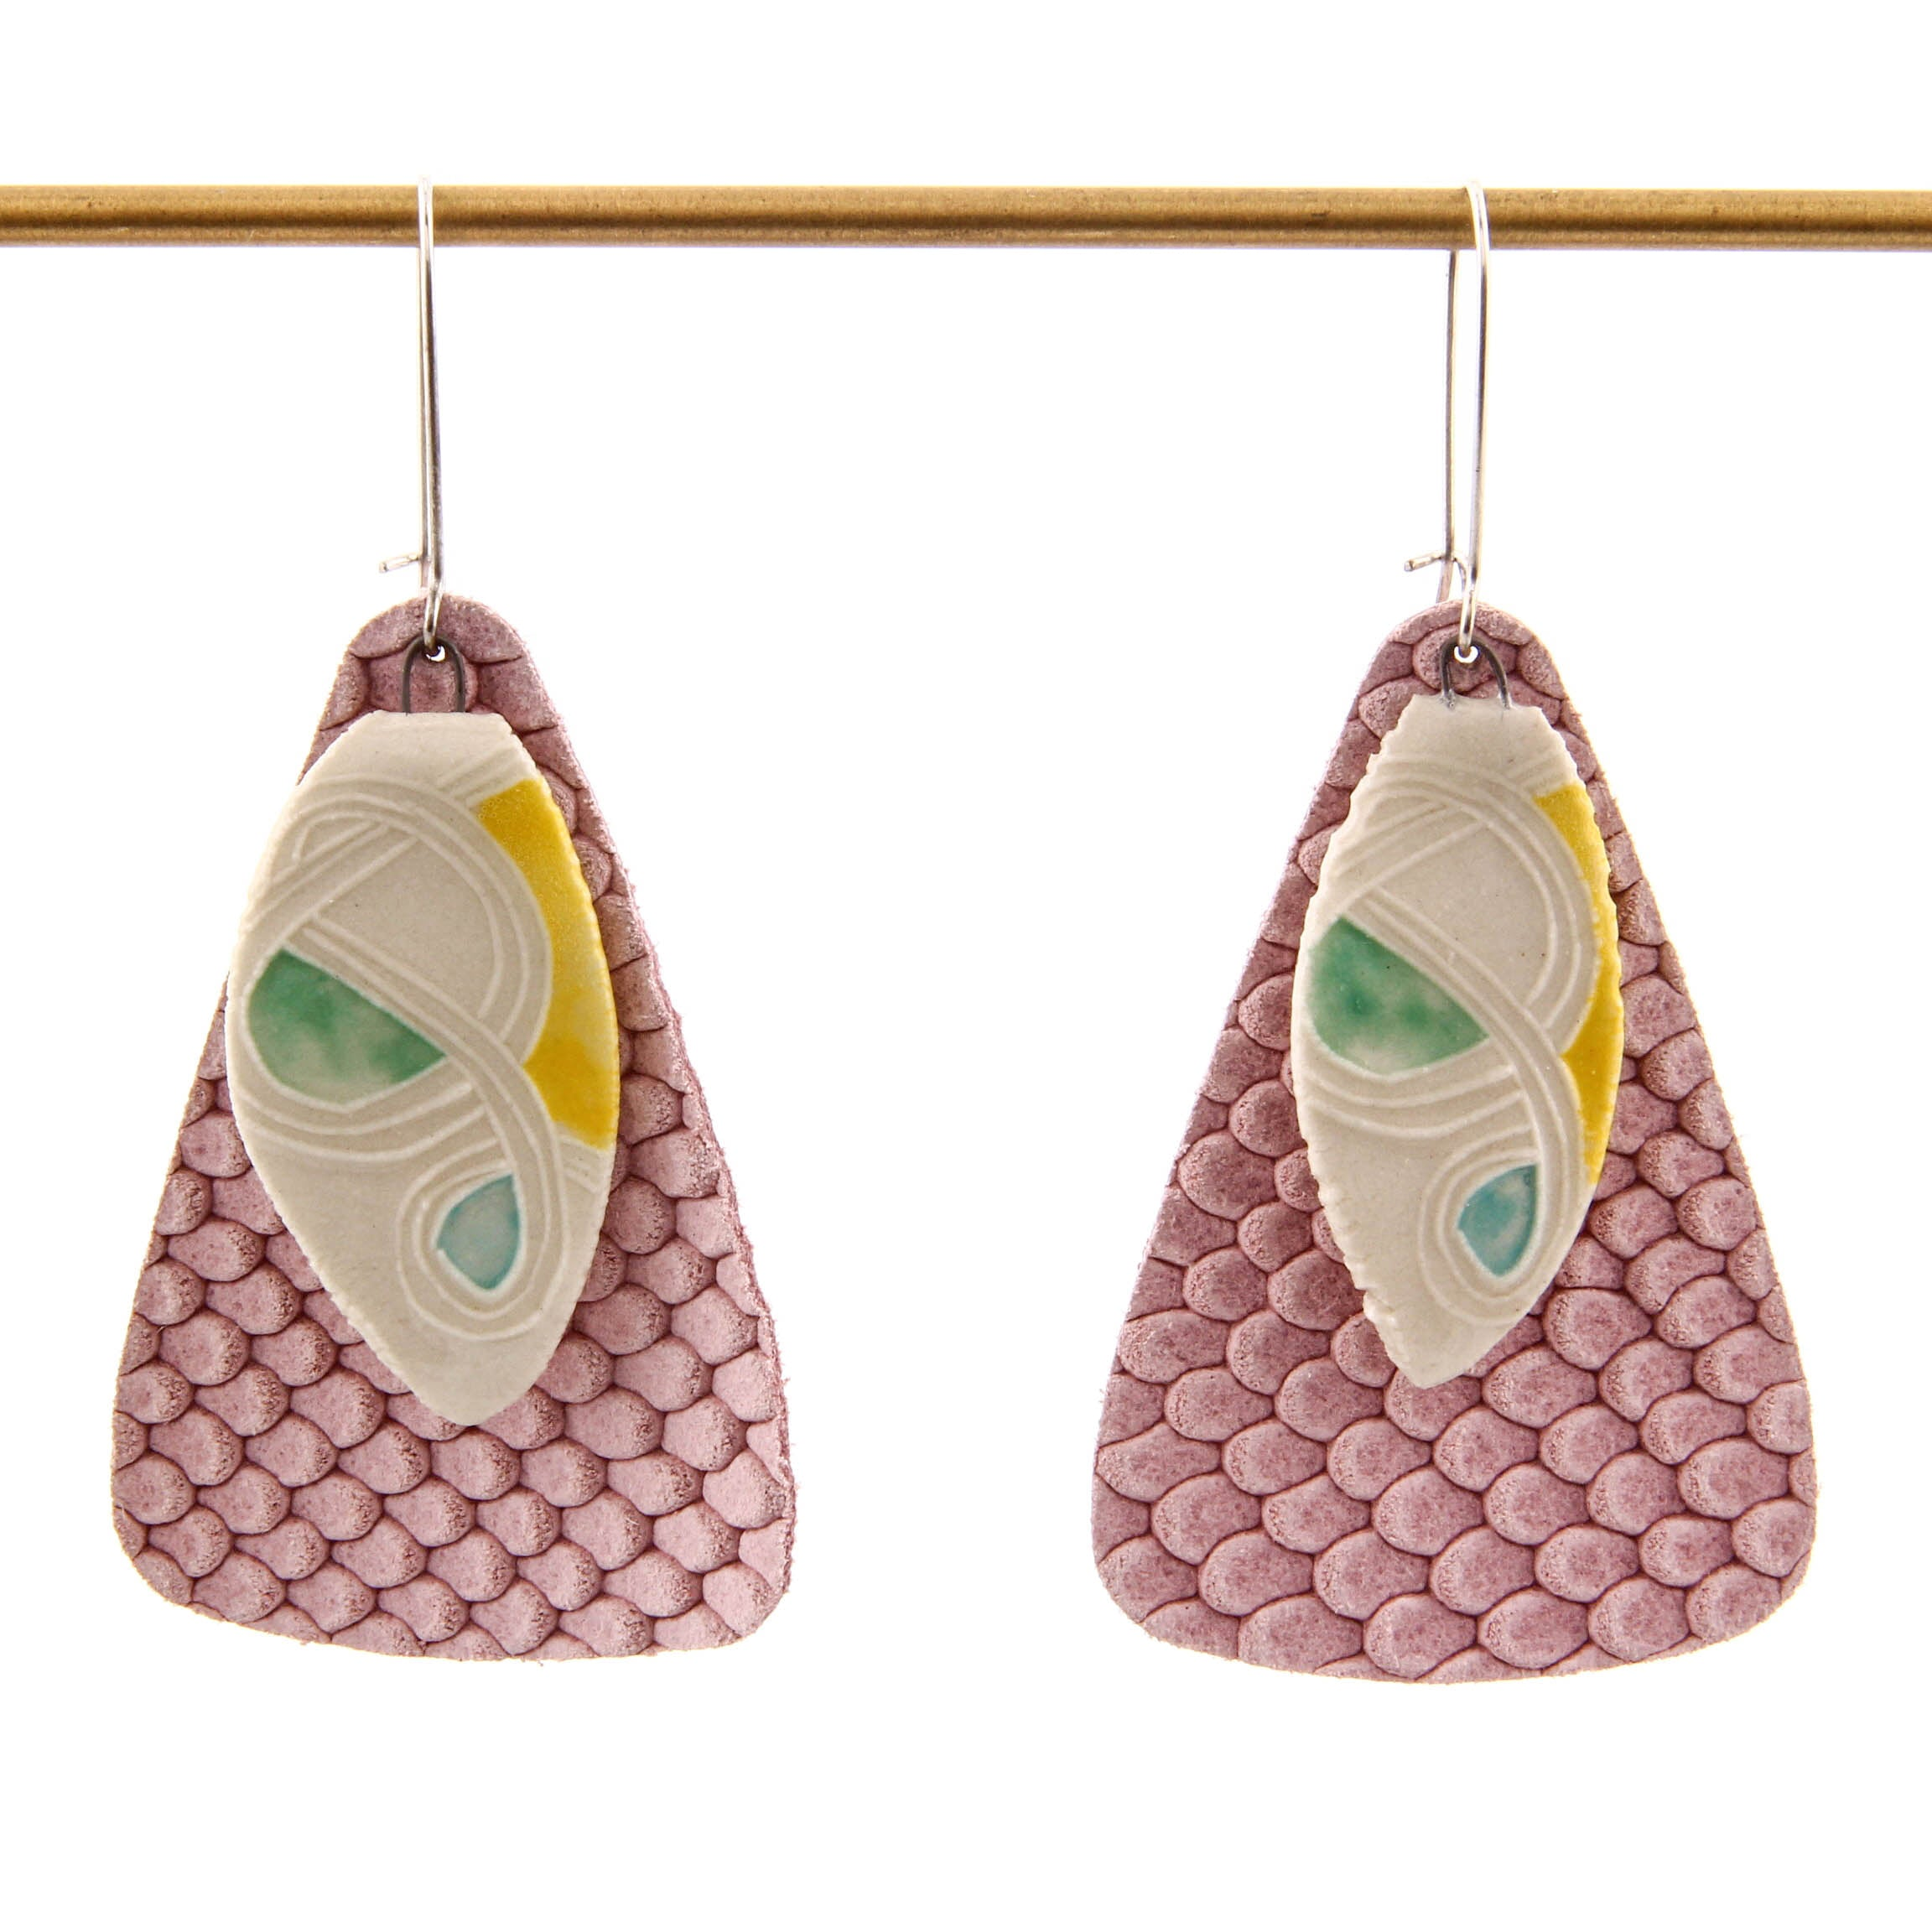 Carole Epp, Long Earrings with Porcelain and Fabric